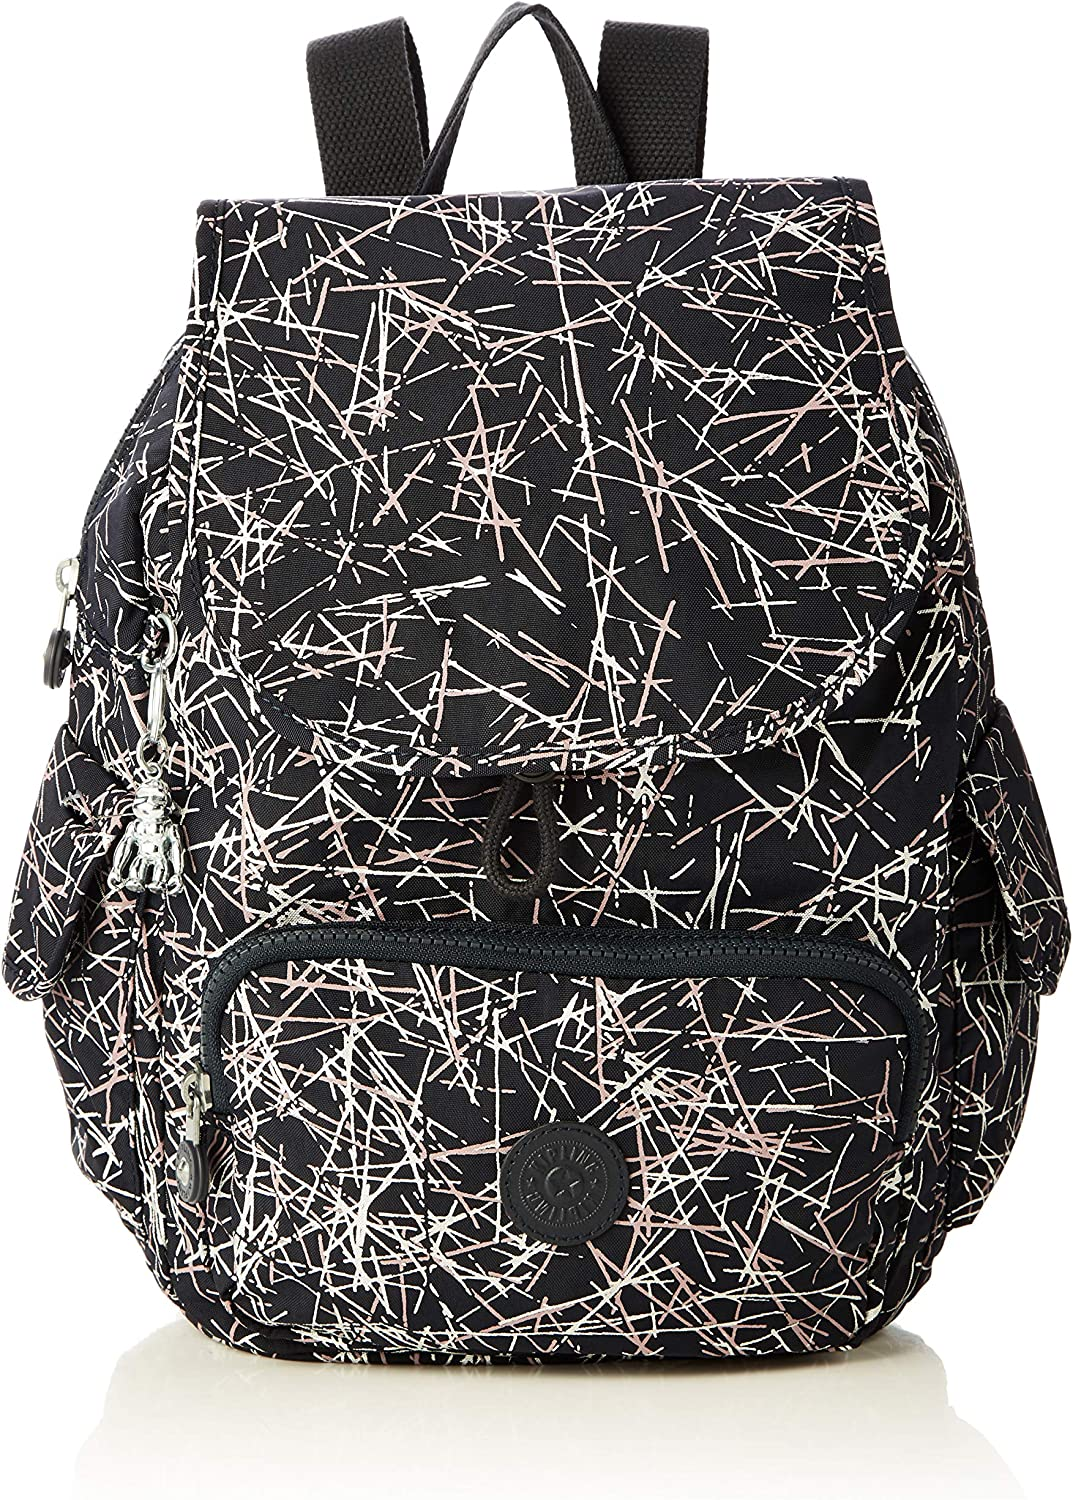 Kipling City Pack Cheap mail order specialty store S In stock Women's Multicolour P Navy Stick Backpack